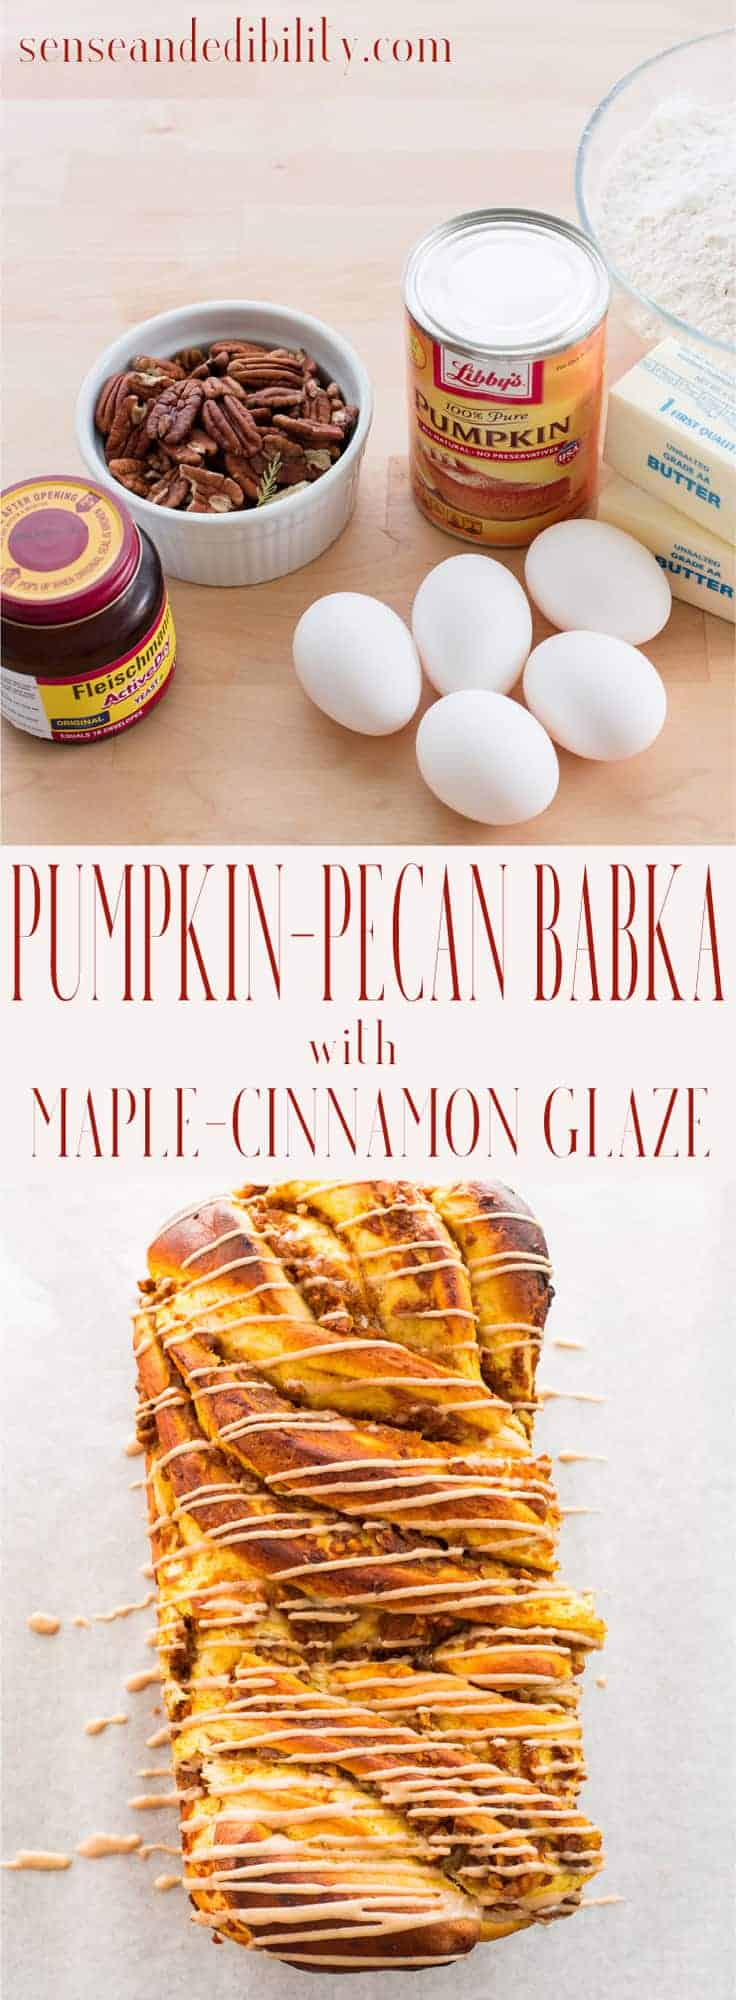 Sense & Edibility's Pumpkin-Pecan Babka with Cinnamon-Maple Glaze Pin